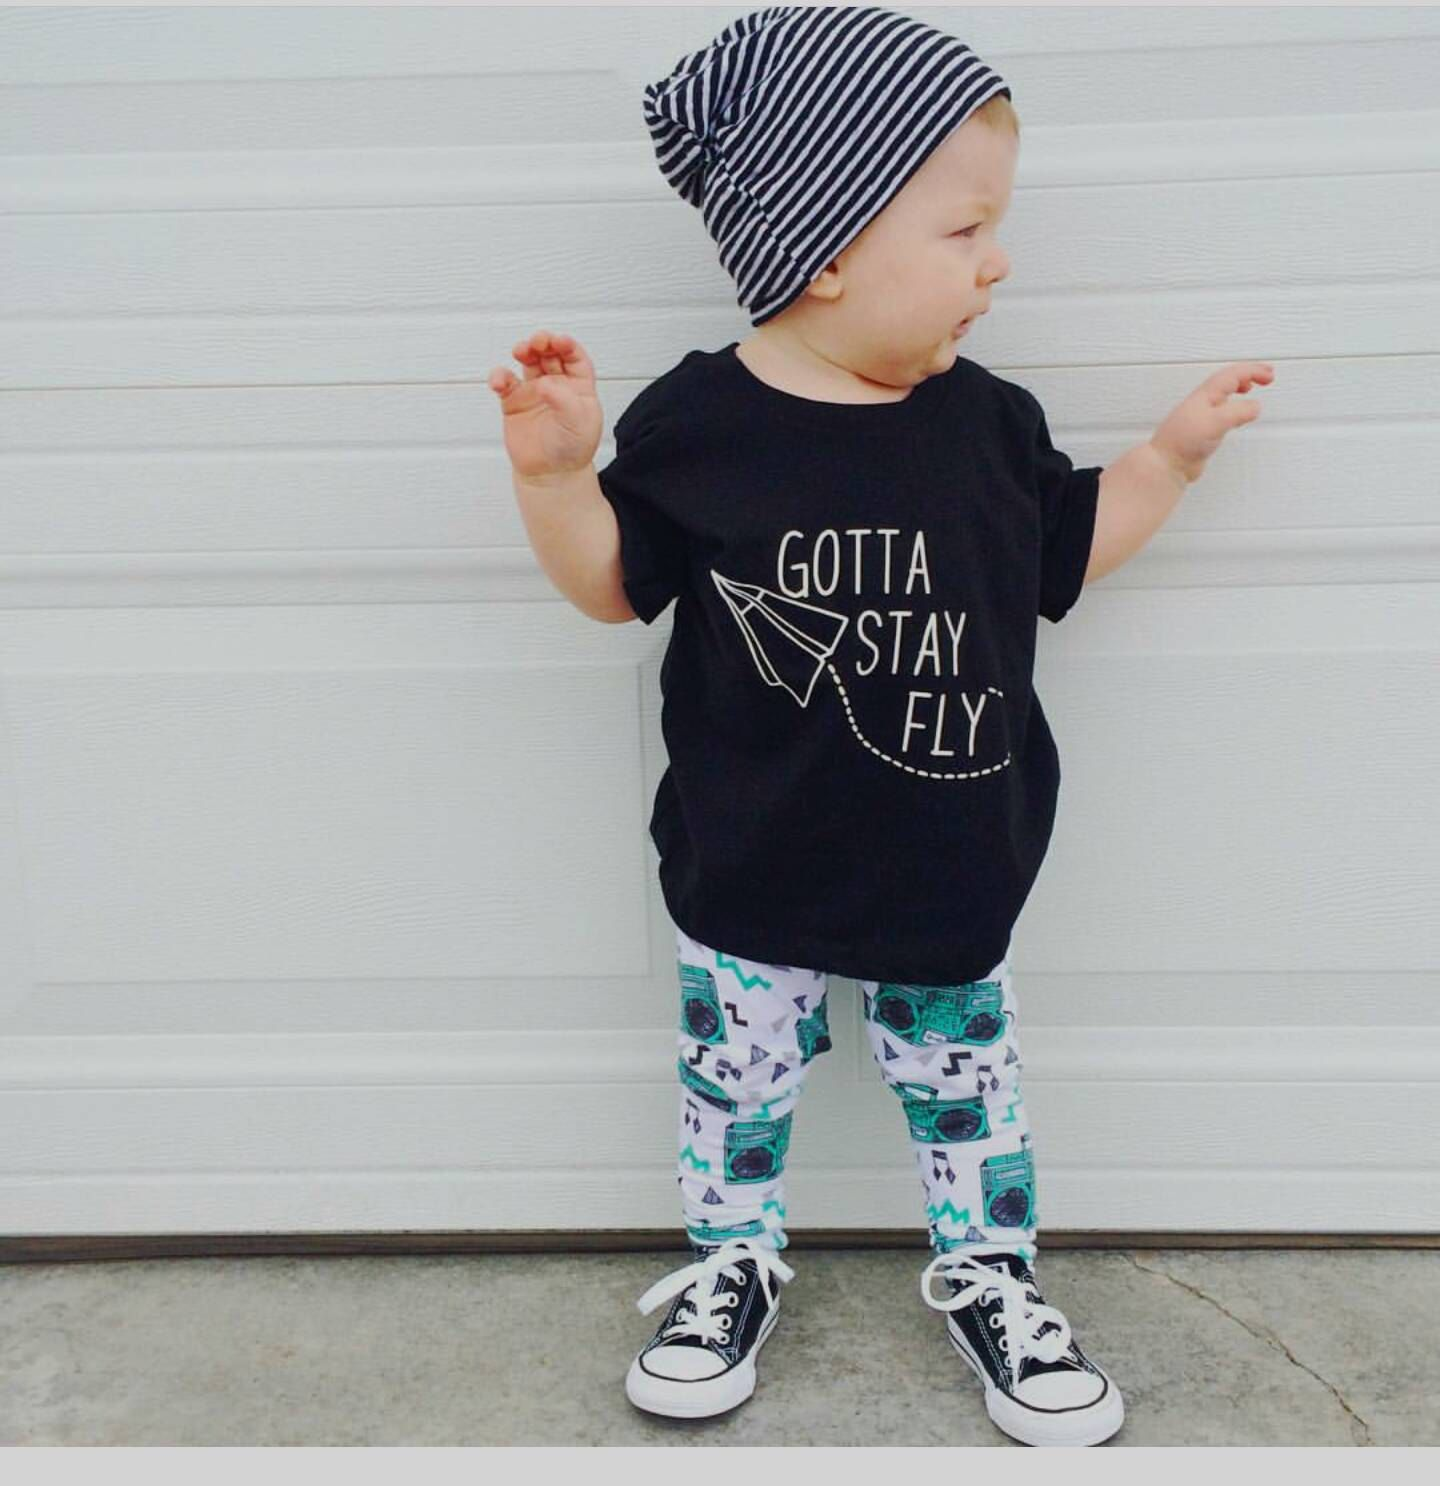 b42901a72 Baby Shirt Hipster Clothes Unisex Toddler Tshirt Dmb - Year of Clean ...